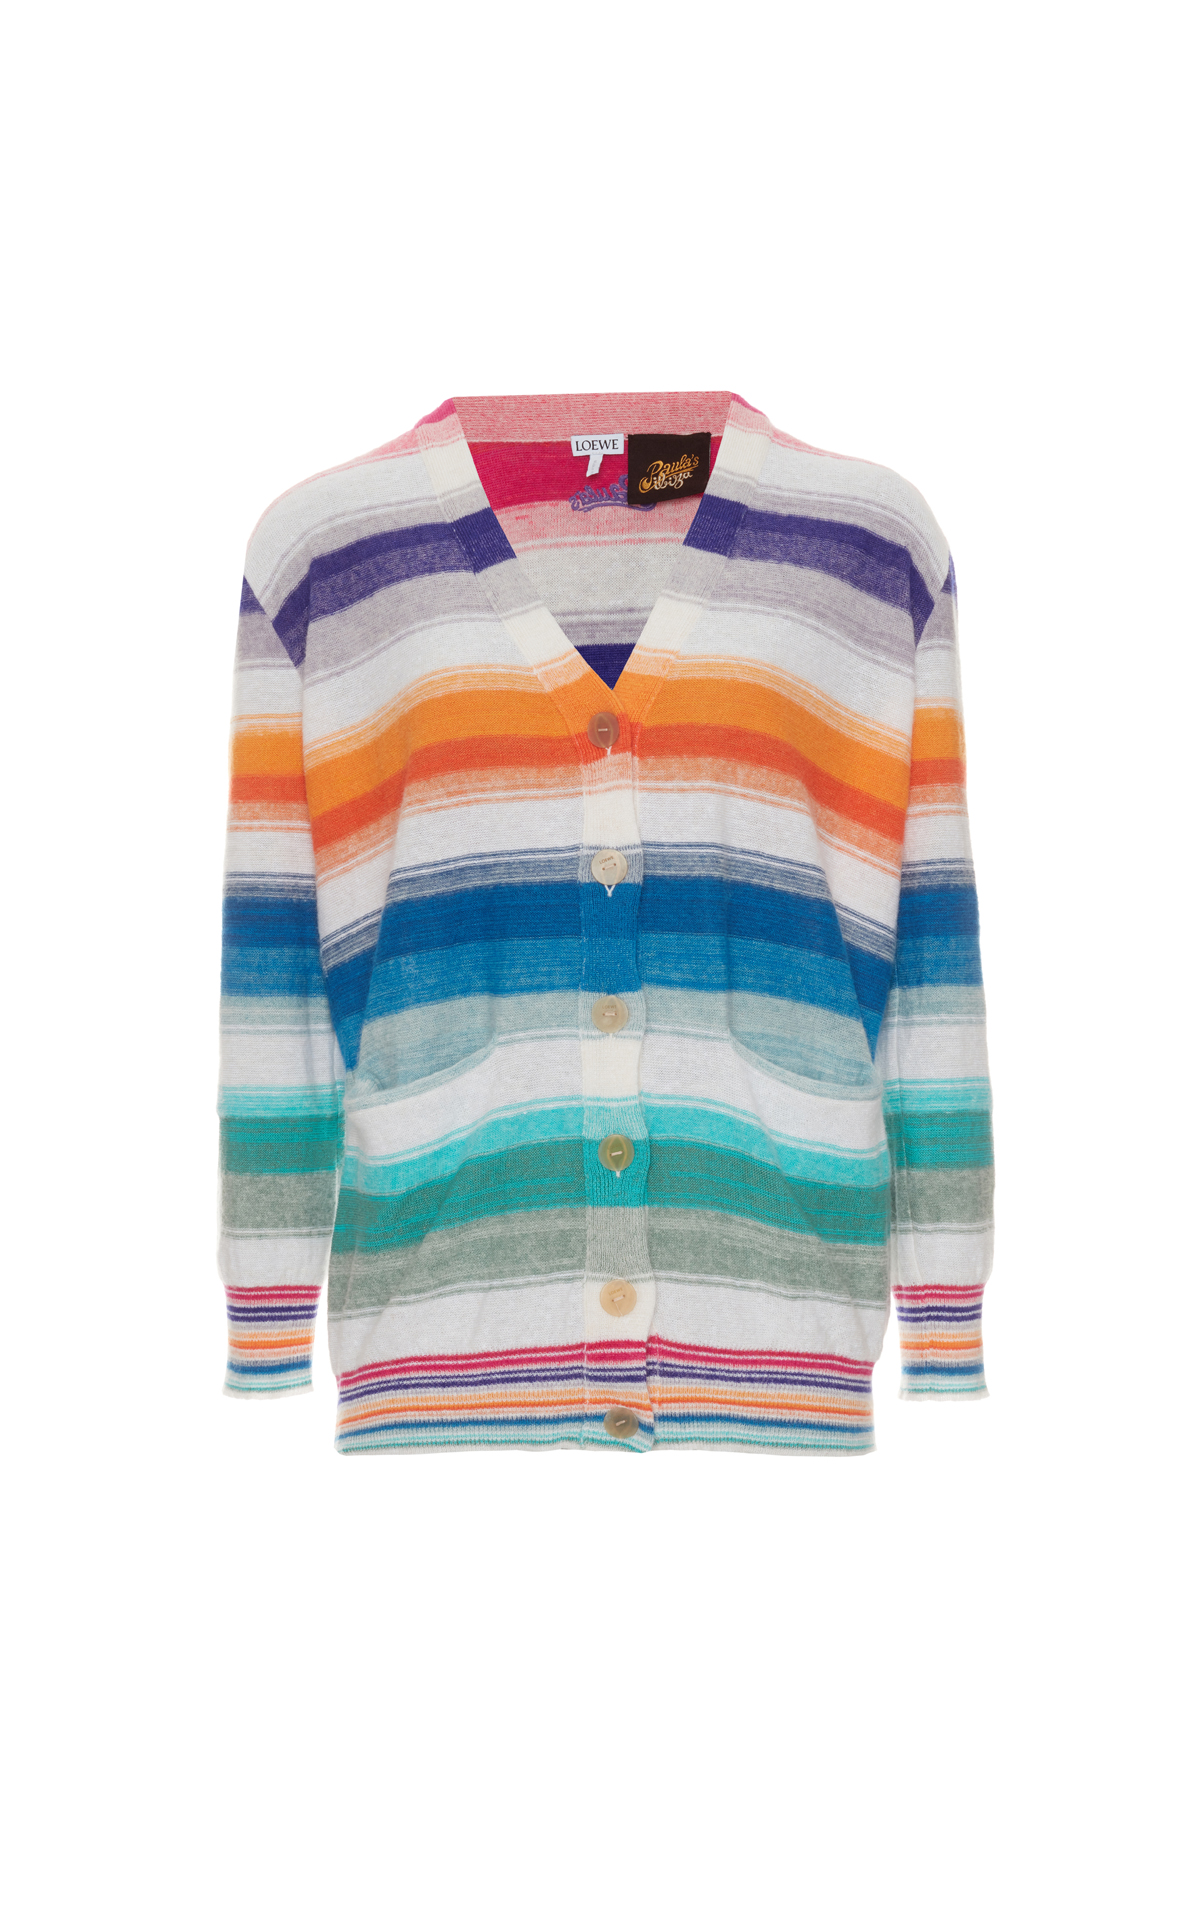 La Vallée Village Loewe Paula Stripe Cardigan Multicolour/White